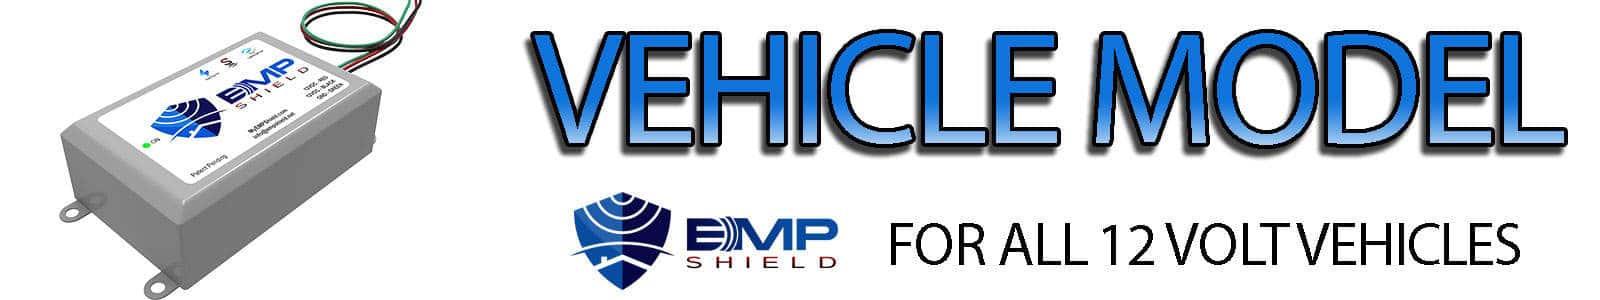 Vehicle EMP Shield 12 Volt DC for Electromagnetic Pulse (EMP), Coronal Mass Ejection (CME / Solar Flare), Lightning, and Power Surge